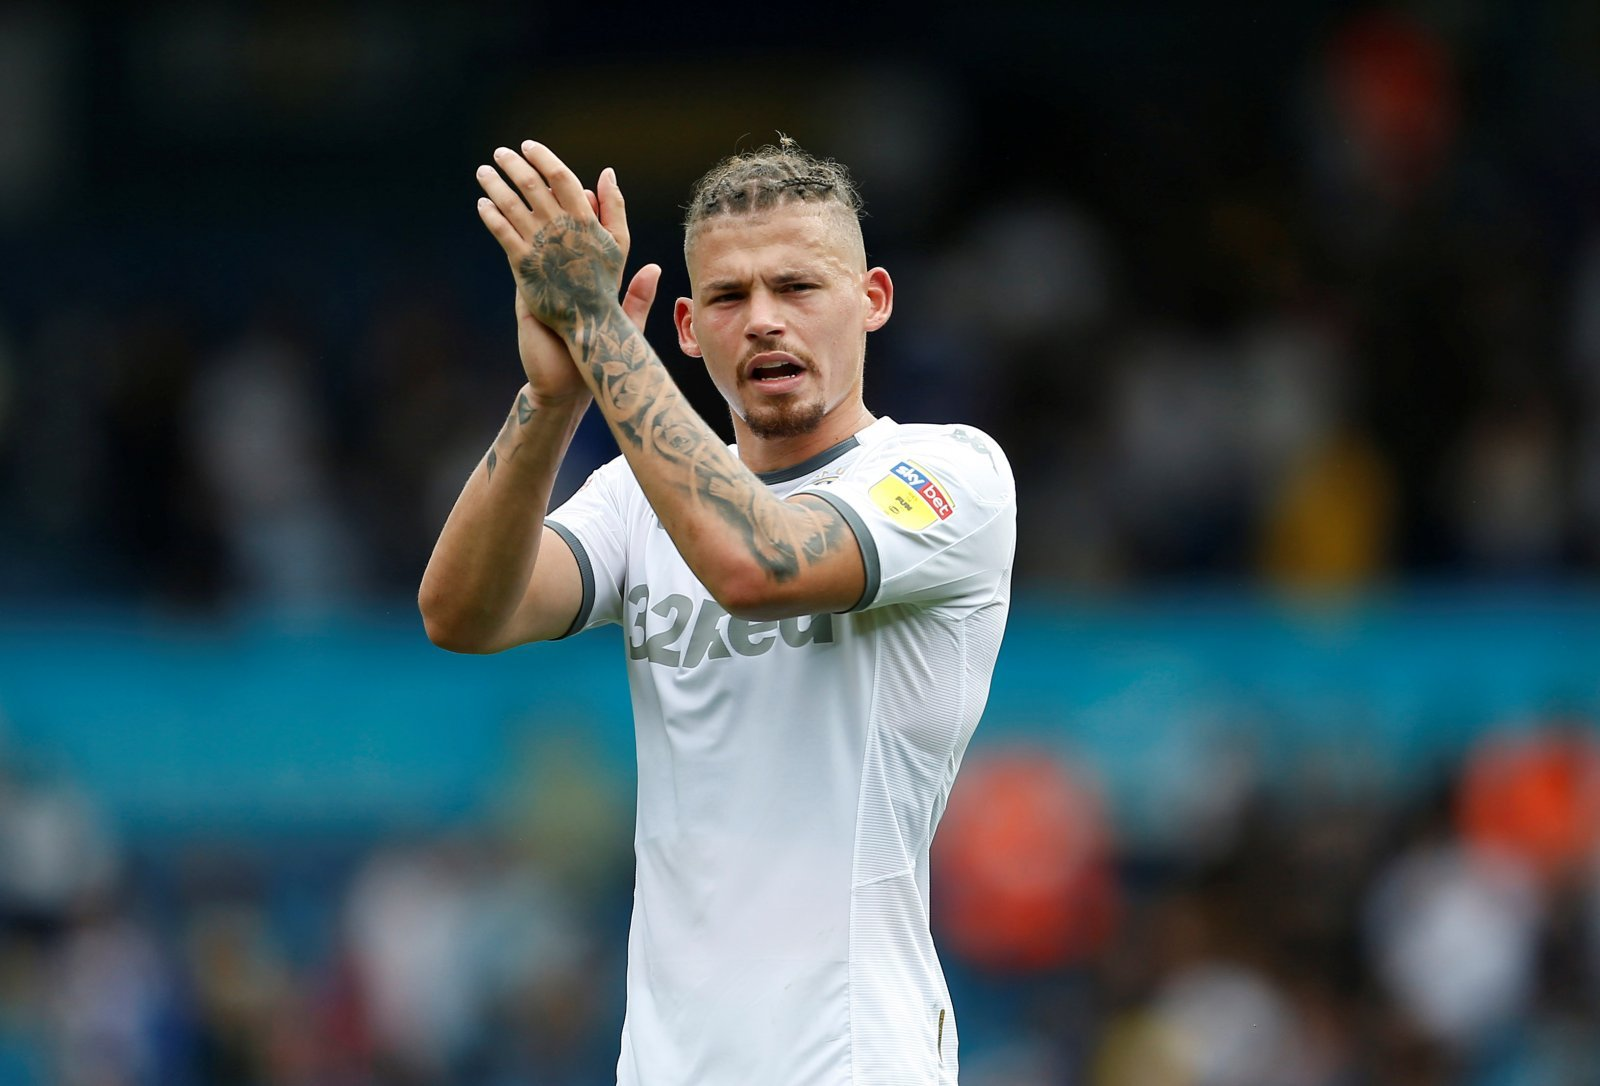 Leeds United: Manchester United interested in Kalvin Phillips